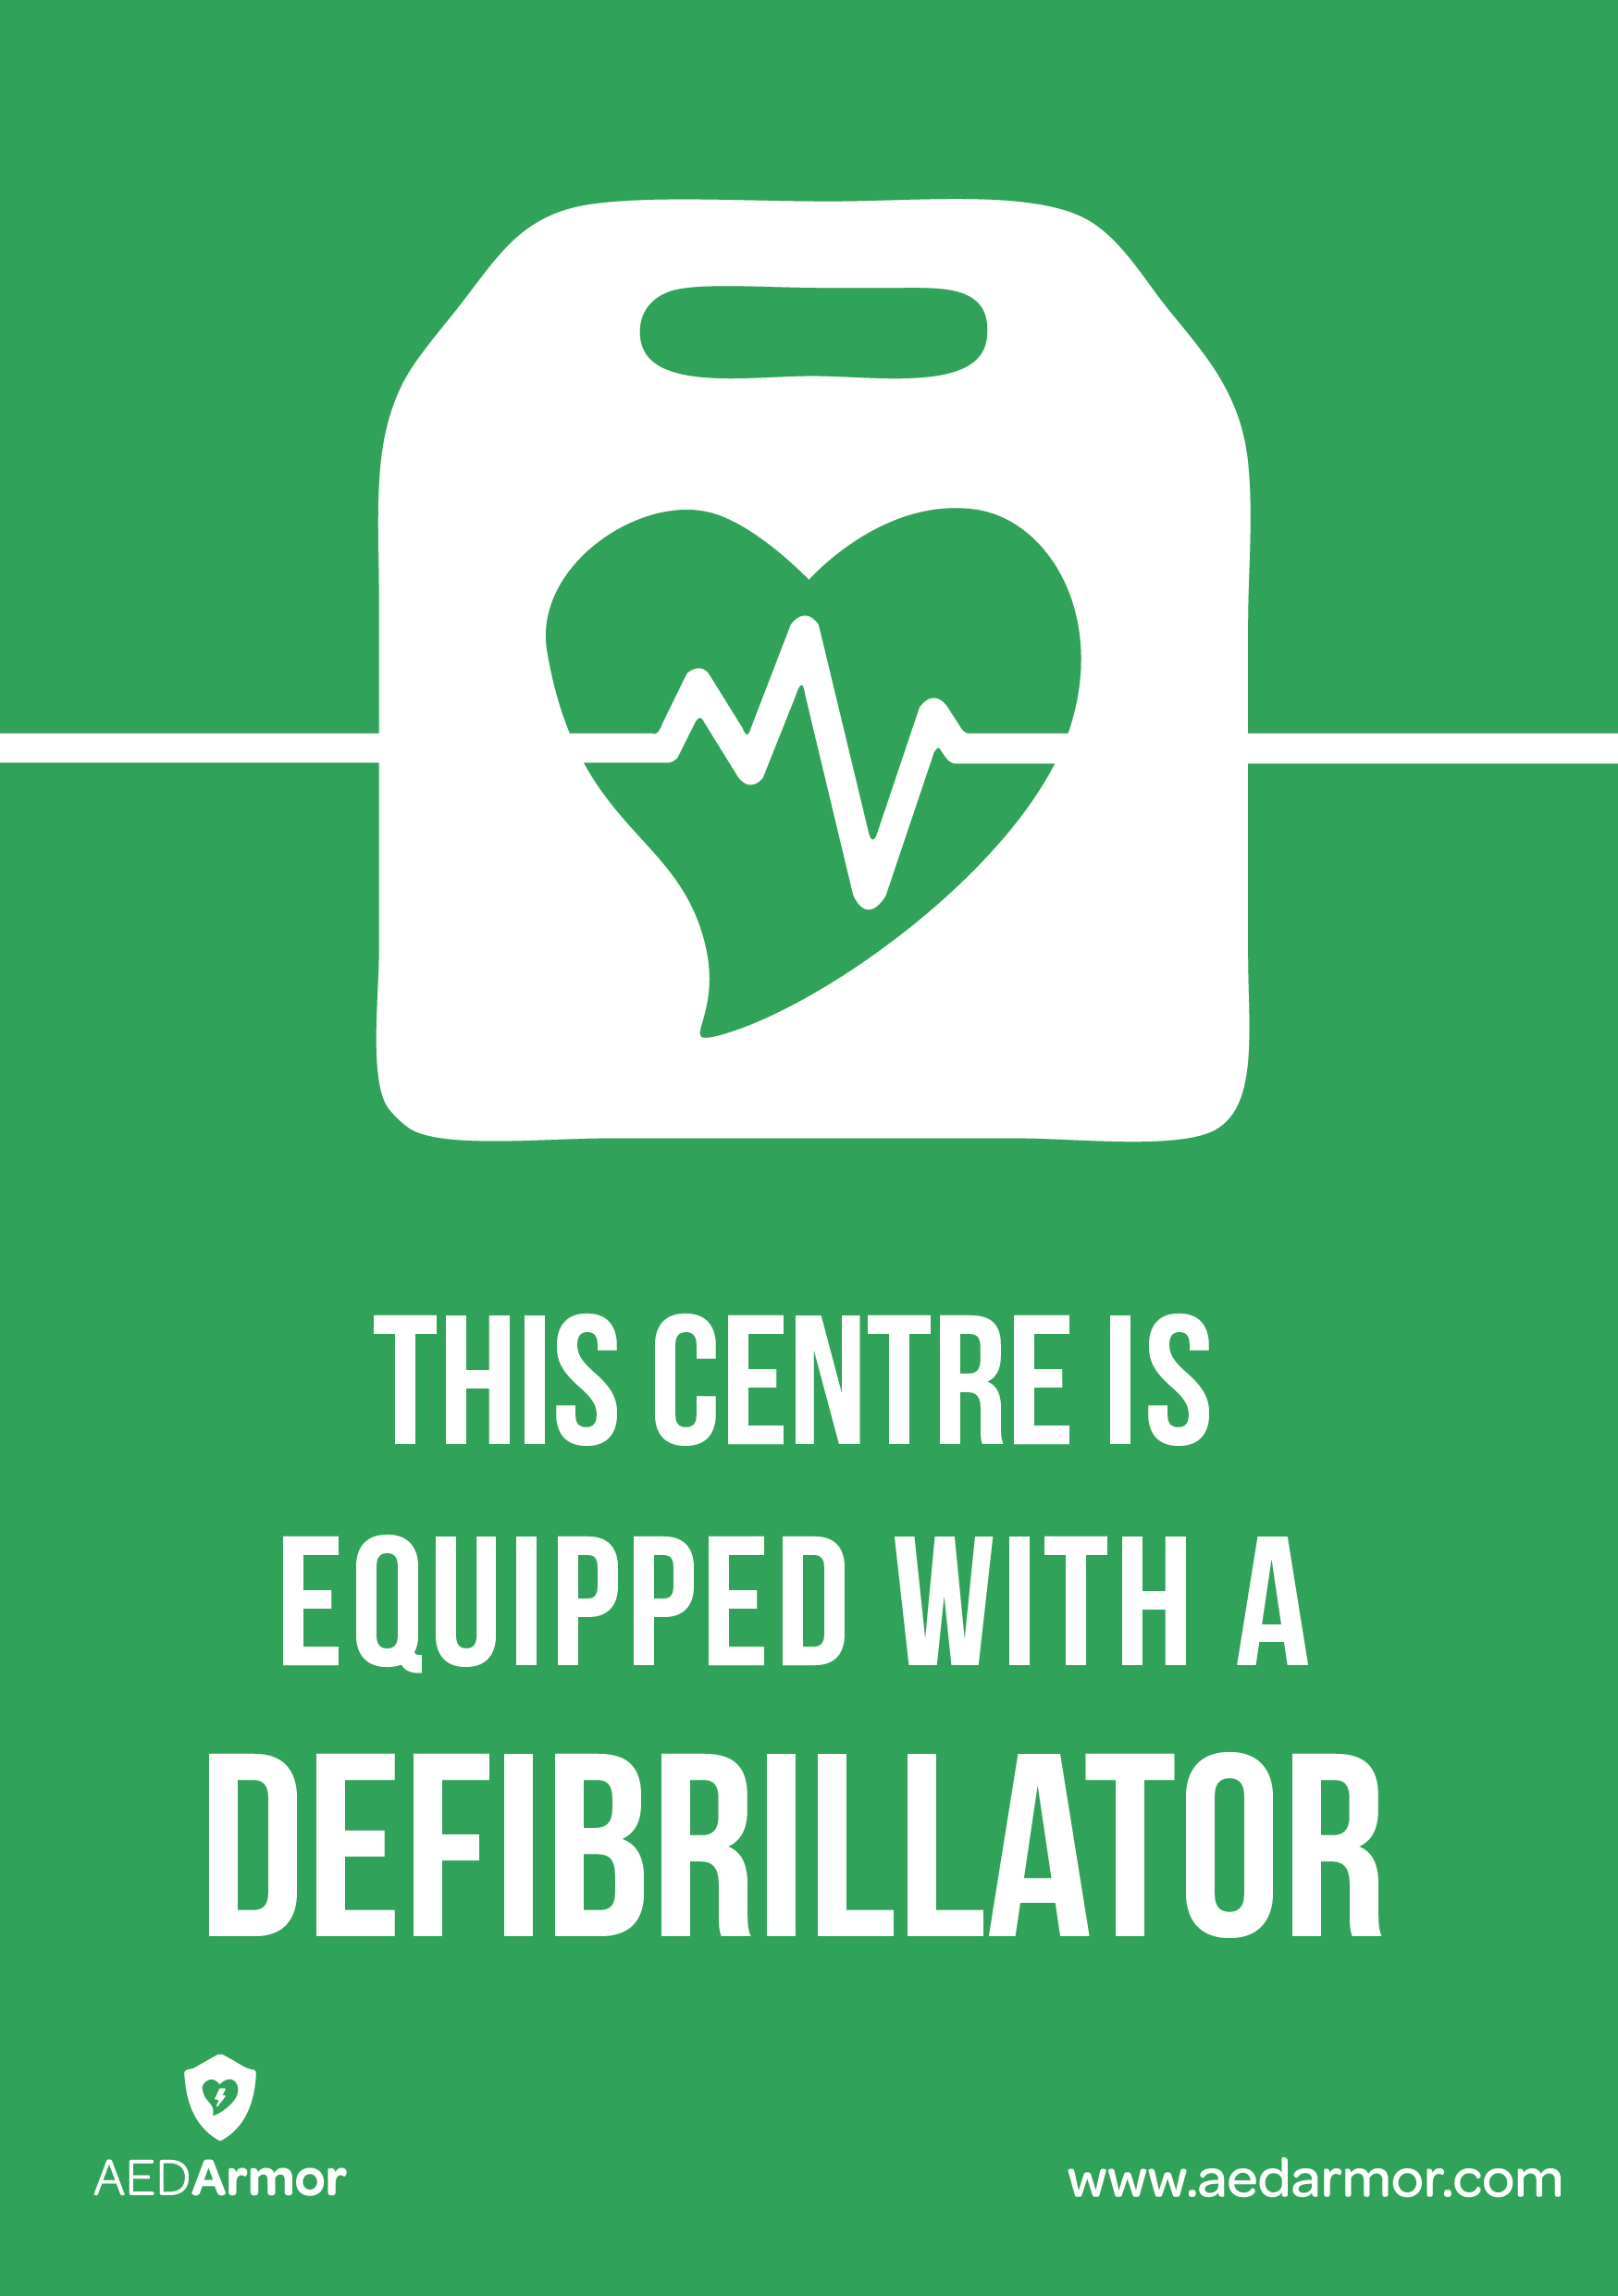 'This centre is equipped with a defibrillator' A5 Sticker